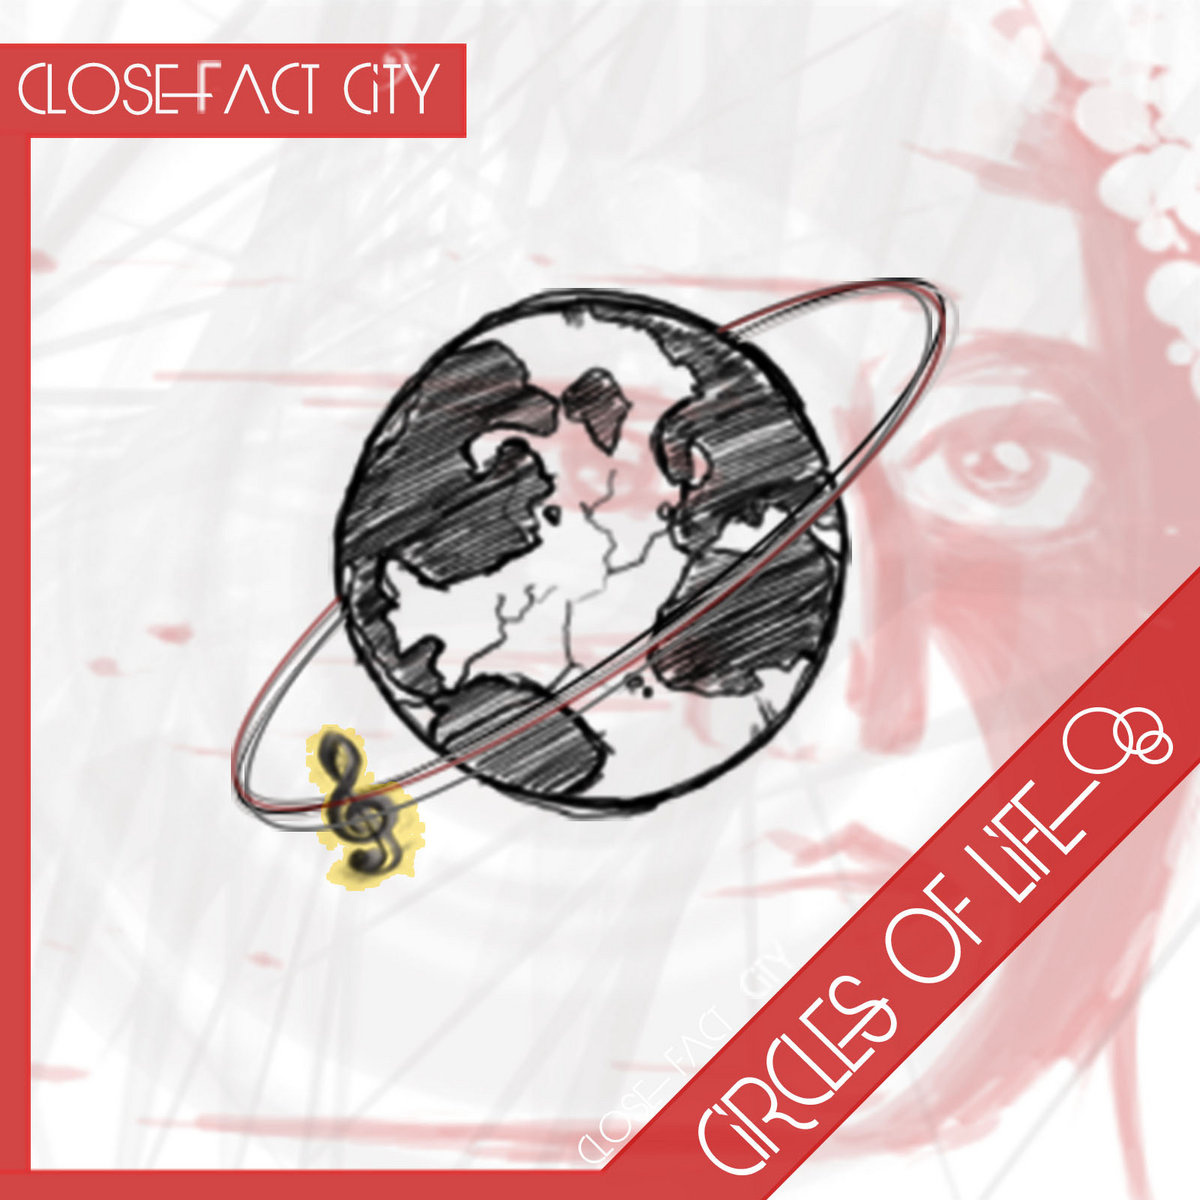 Resultado de imagen para close fact city circles of life